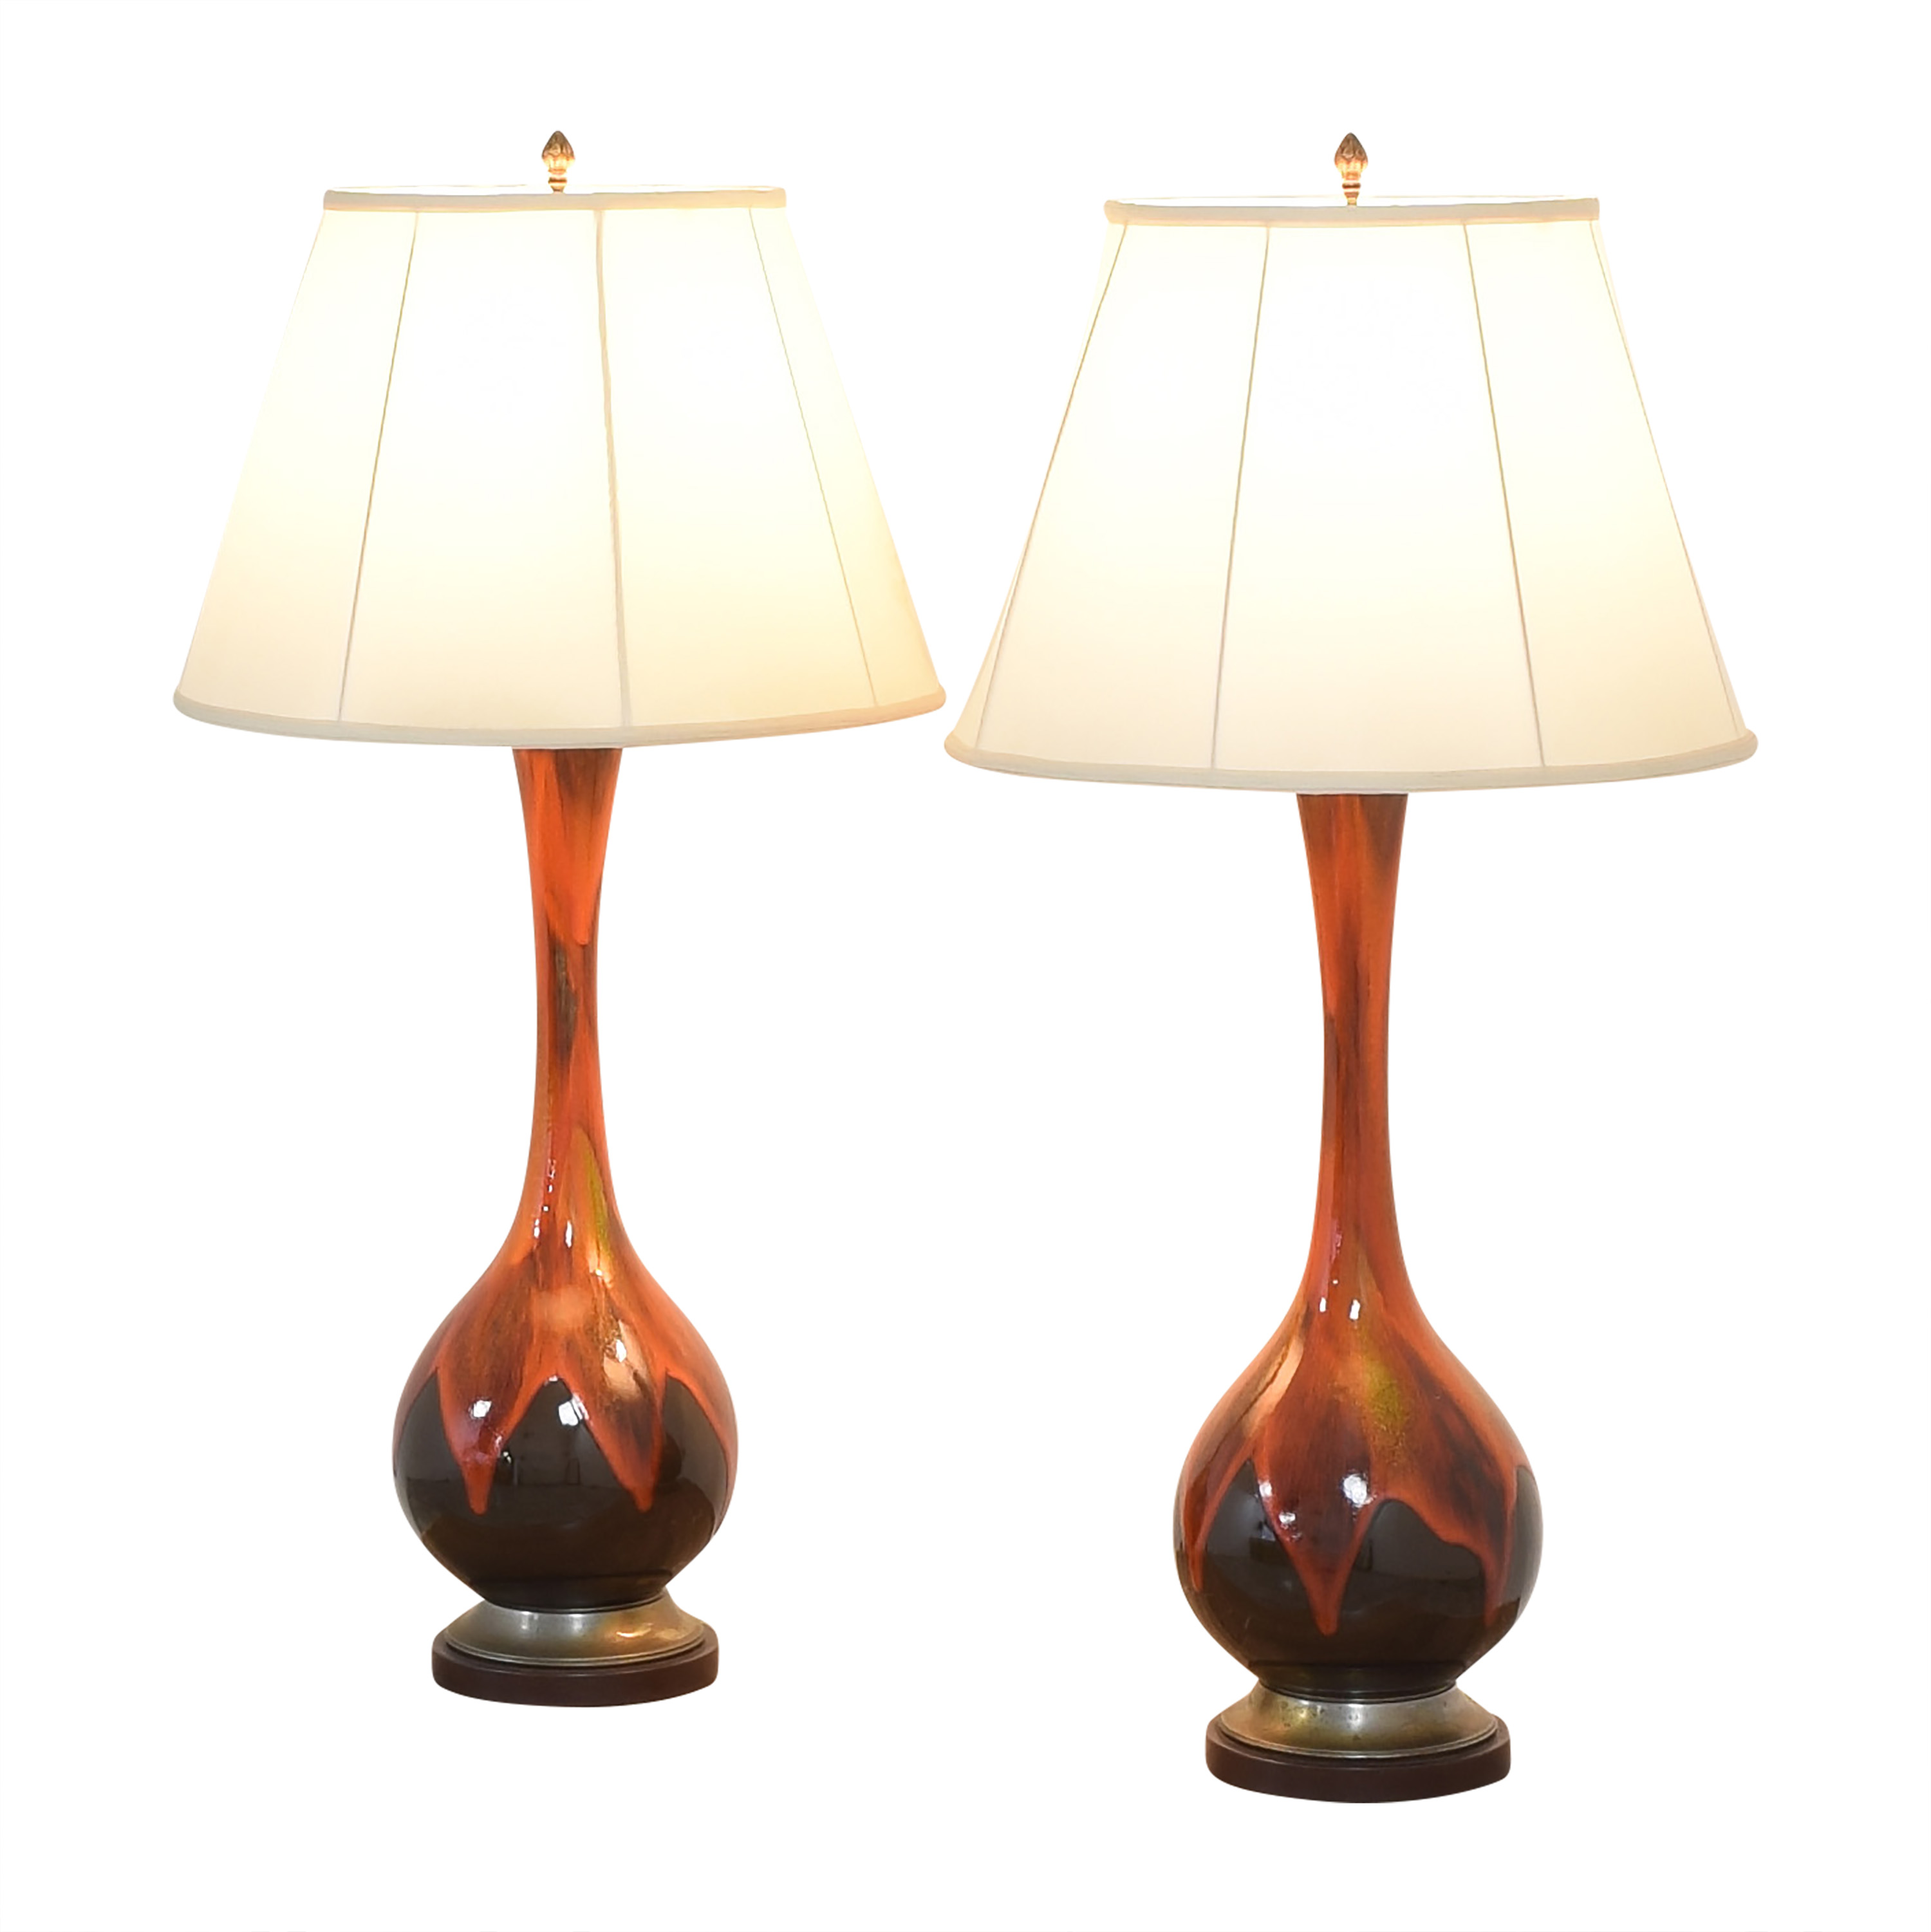 Custom Table Lamps for sale